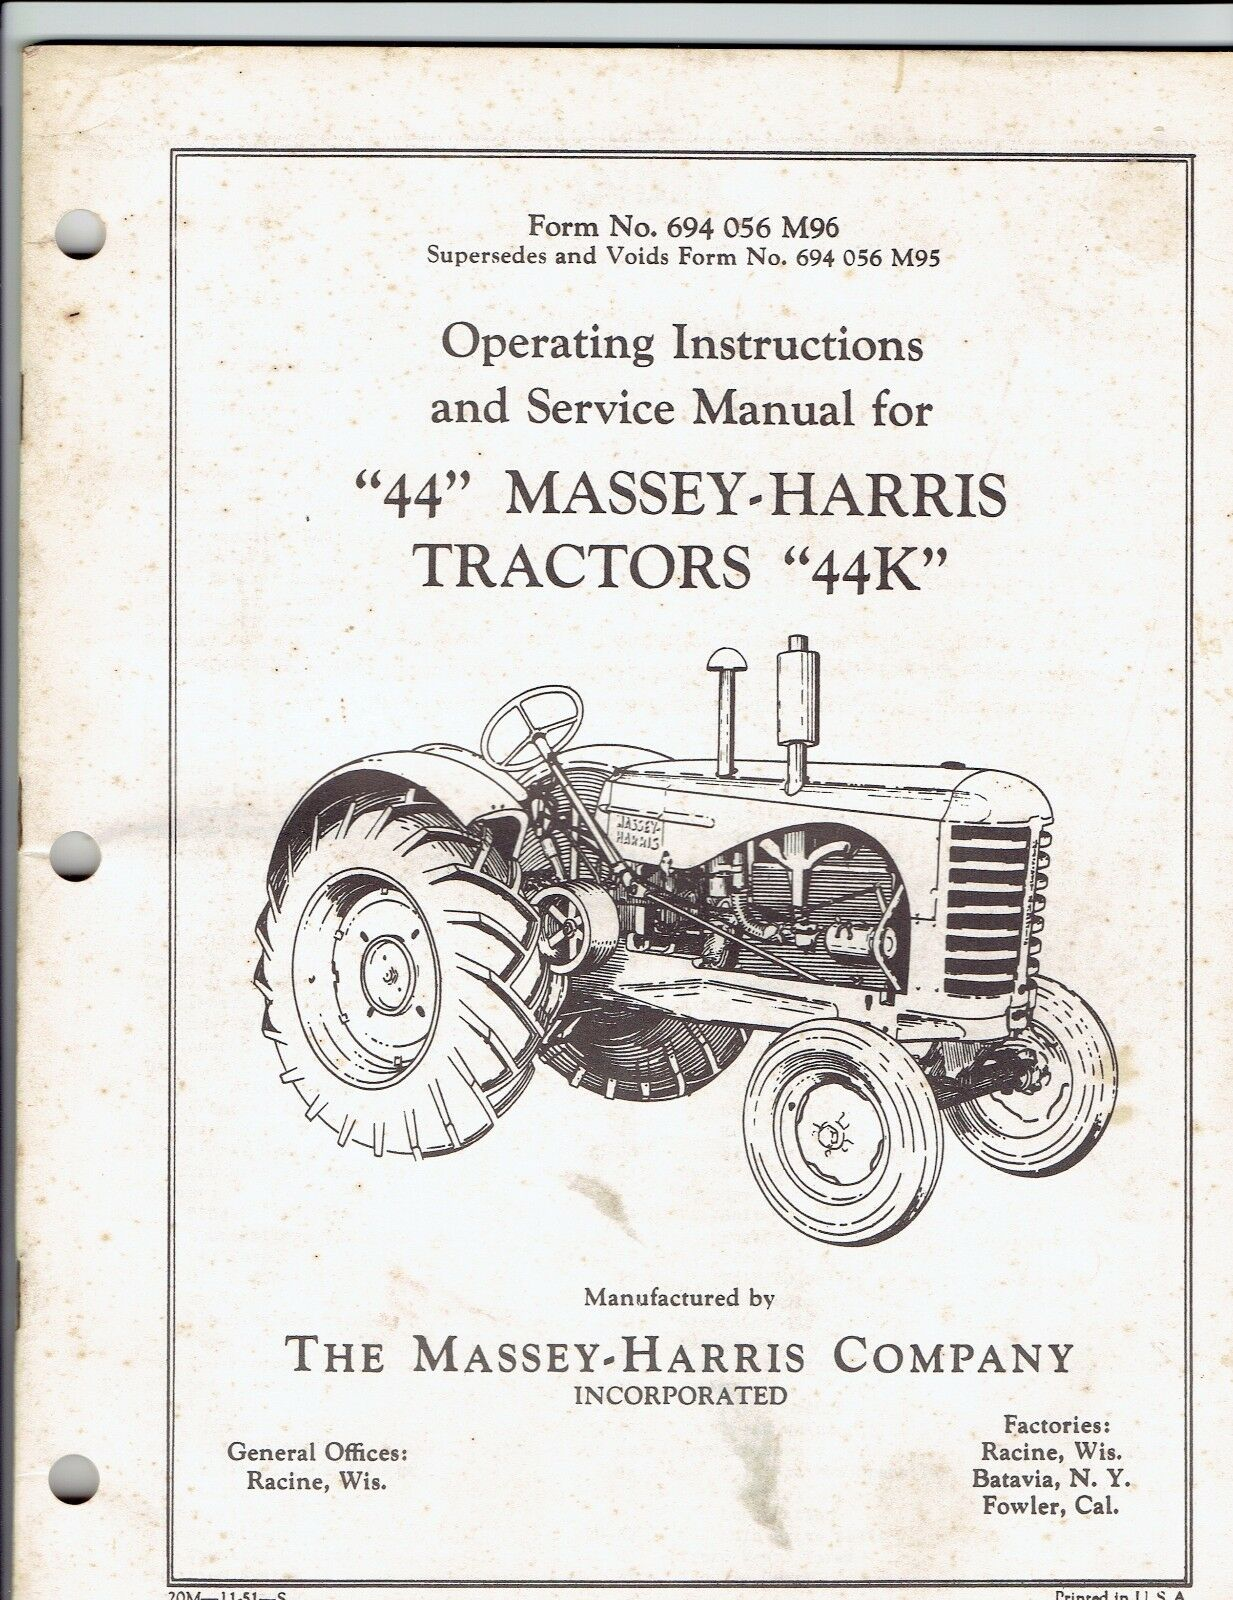 Massey Harris Operating Instructions & Service Manual for 44 & 44K Tractors  1 of 1 See More